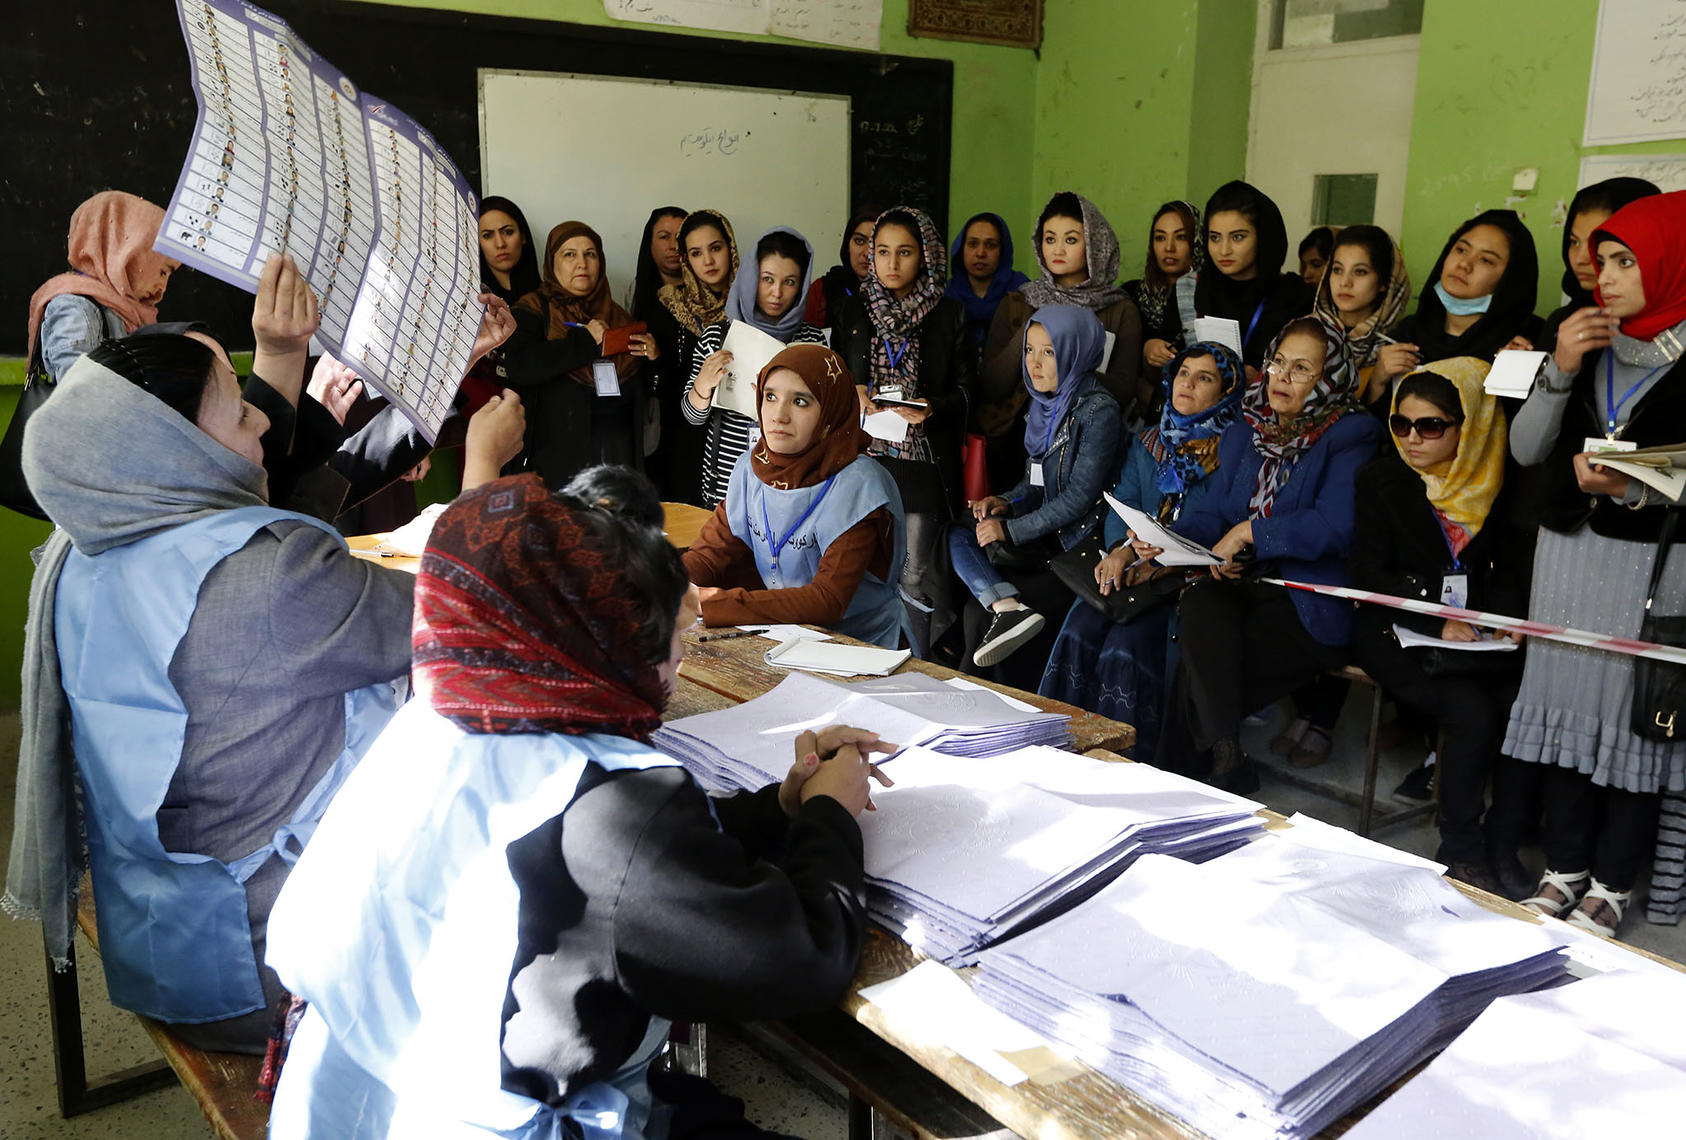 An electoral official examines a ballot in front of election observers during the 2018 parliamentary elections in Kabul, Oct. 21, 2018. (Fardin Waezi/UNAMA)